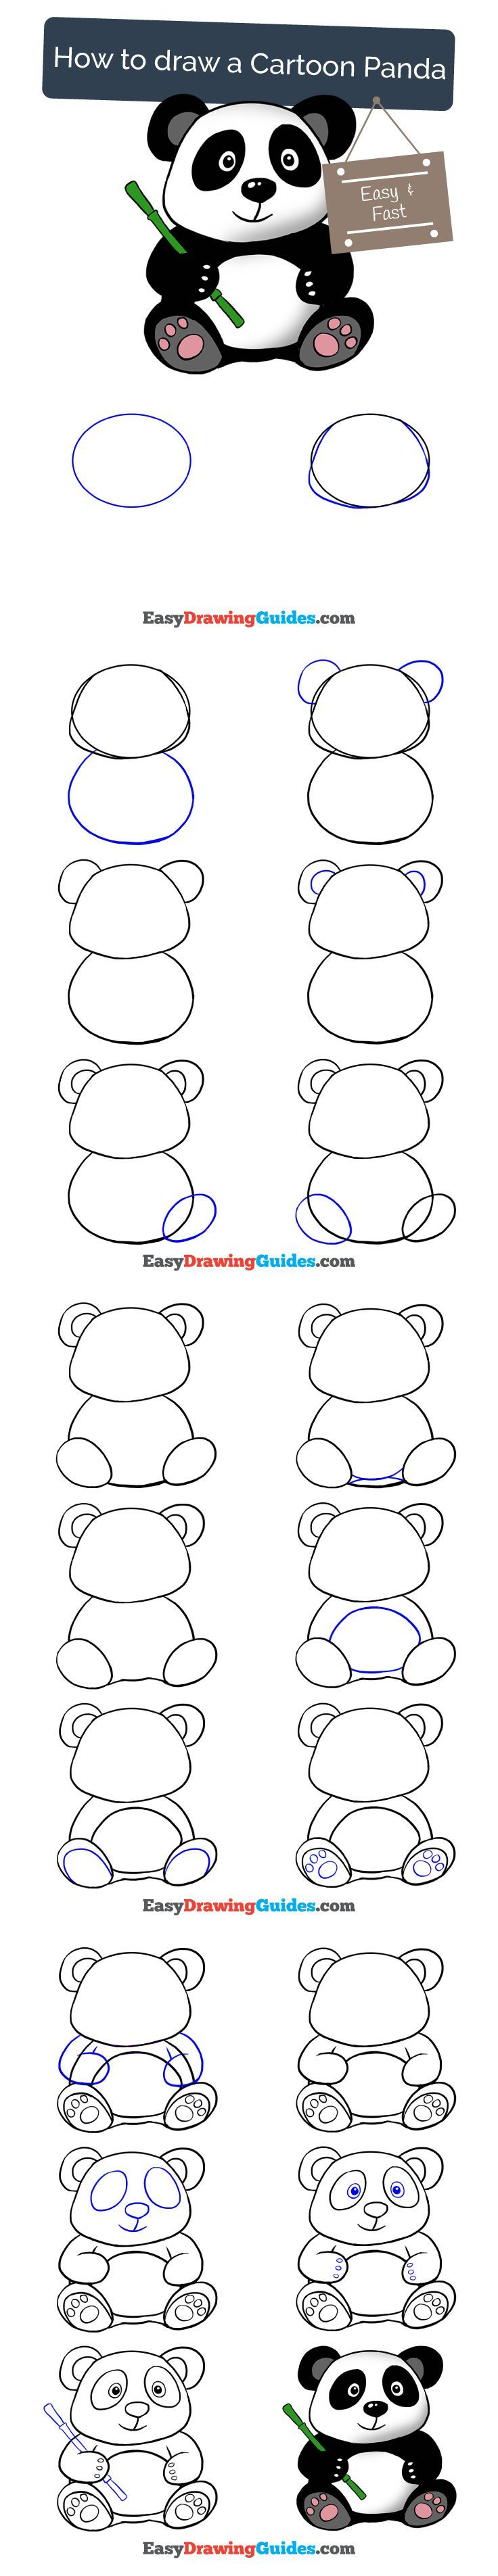 Learn How to Draw a Cartoon Panda: Easy Step-by-Step Drawing Tutorial for Kids and Beginners. #panda #cartoon #drawing #tutorial. See the full tutorial at https://easydrawingguides.com/draw-cartoon-panda/